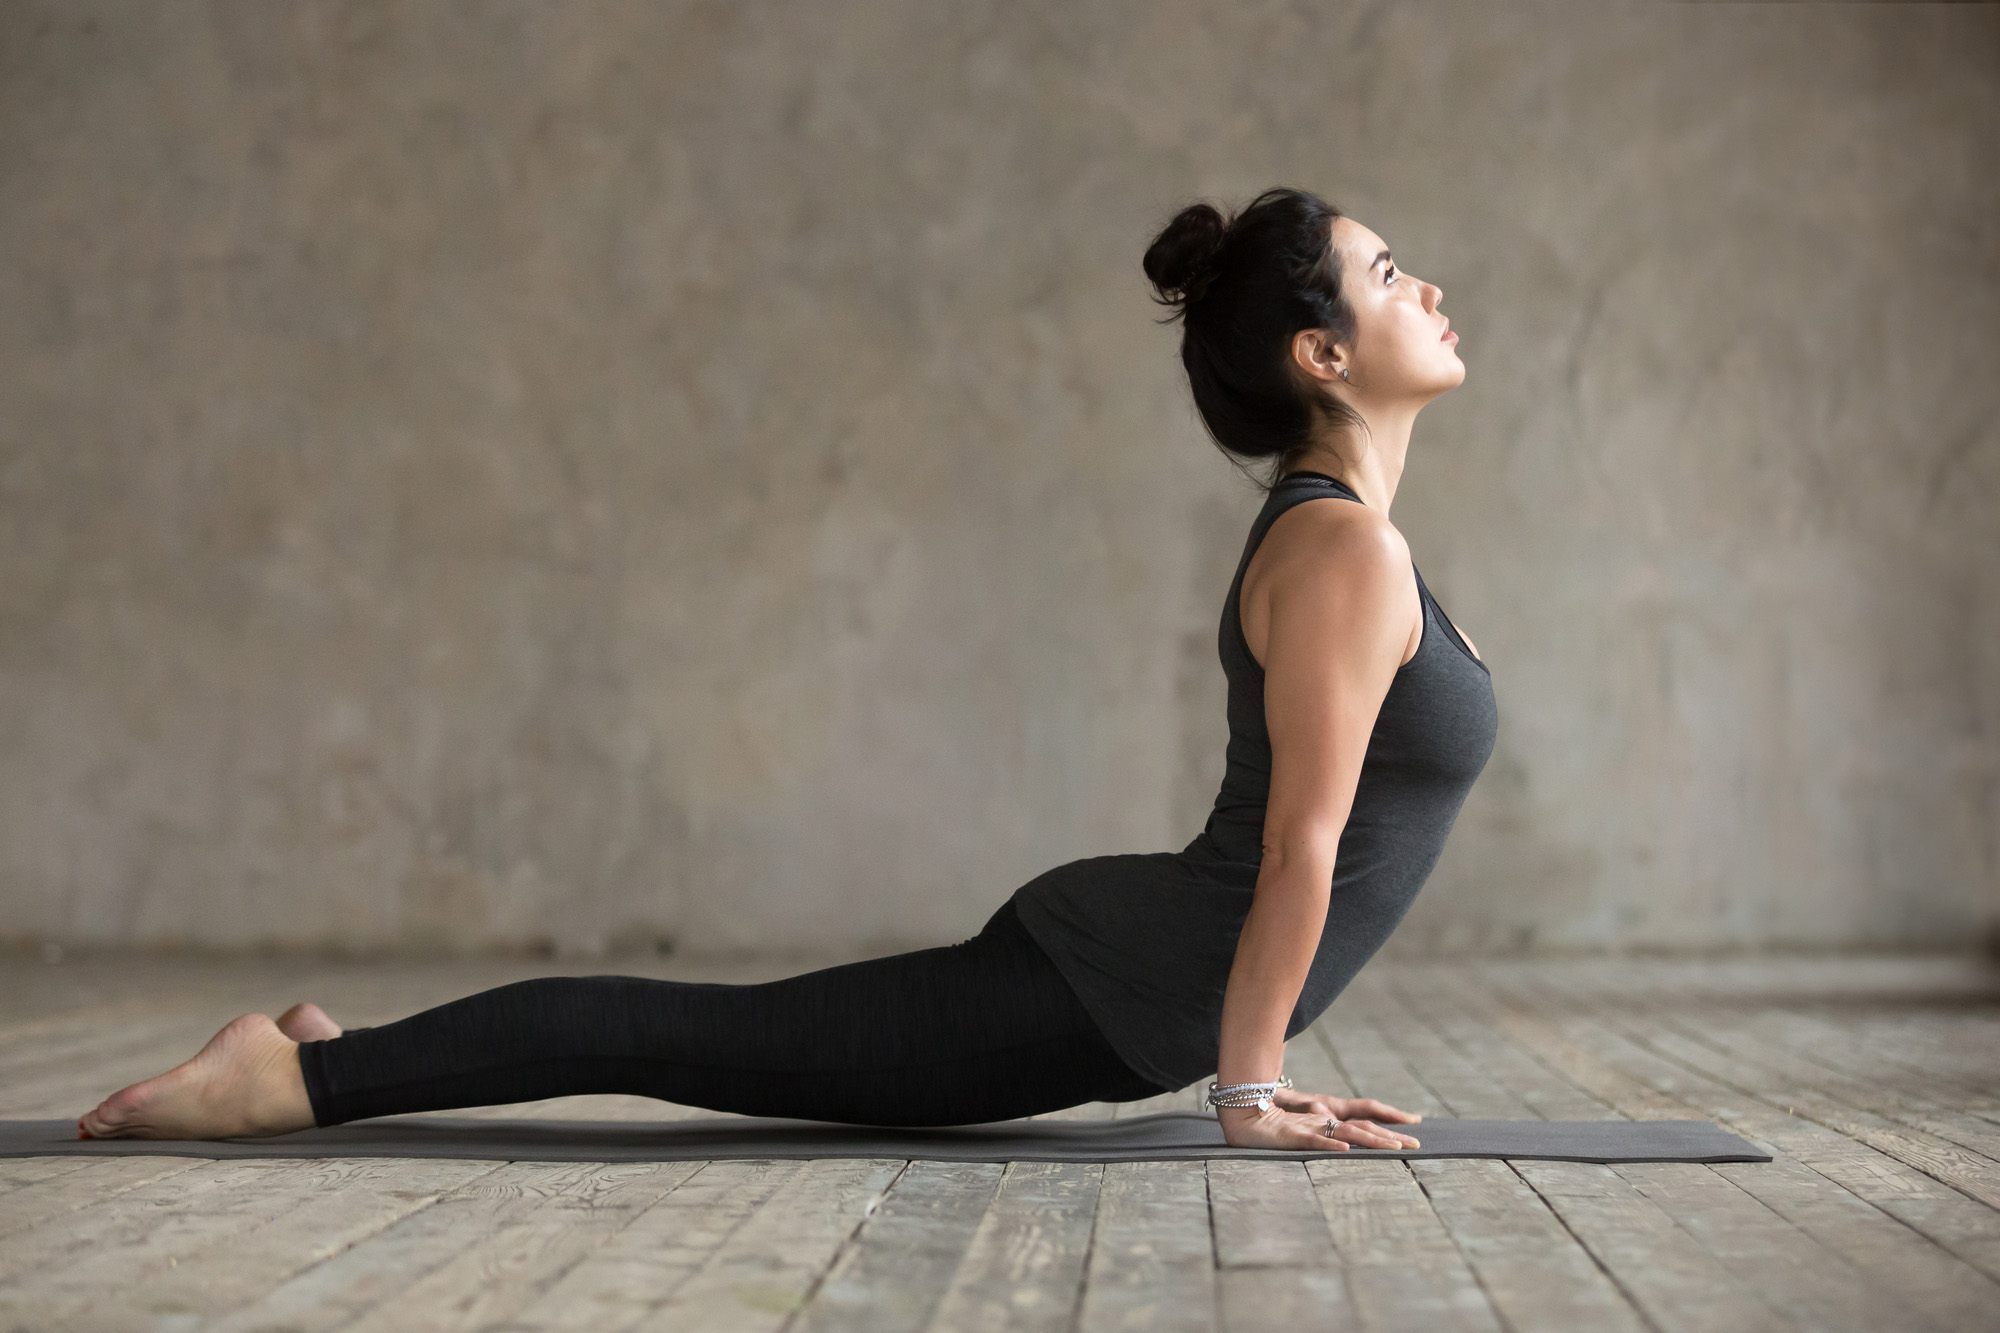 Young woman practicing yoga-72 ppi